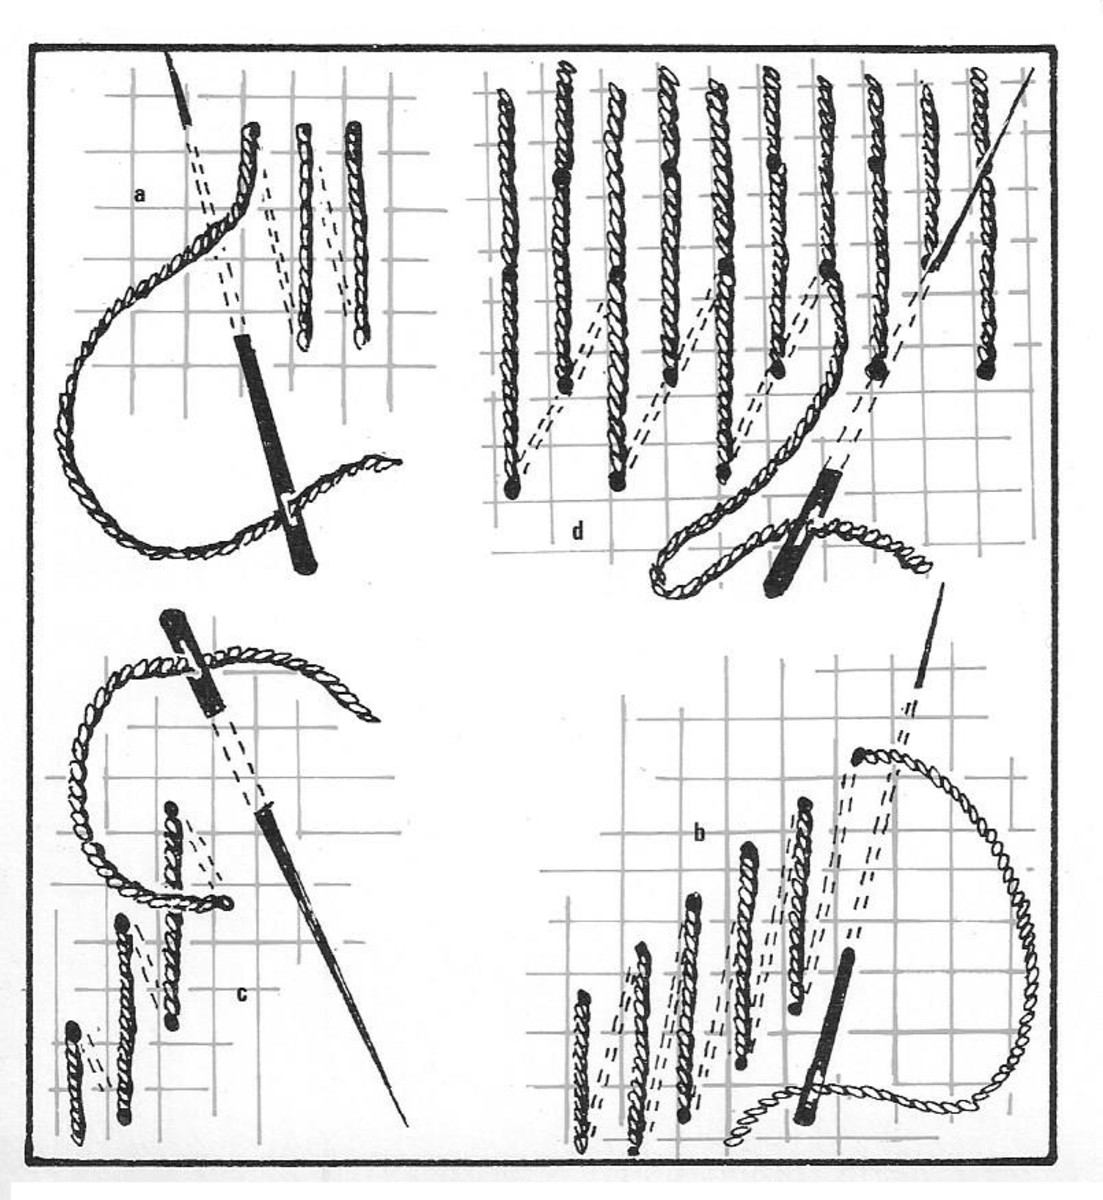 Figure 1 - Four stitch formations used in Bargello.